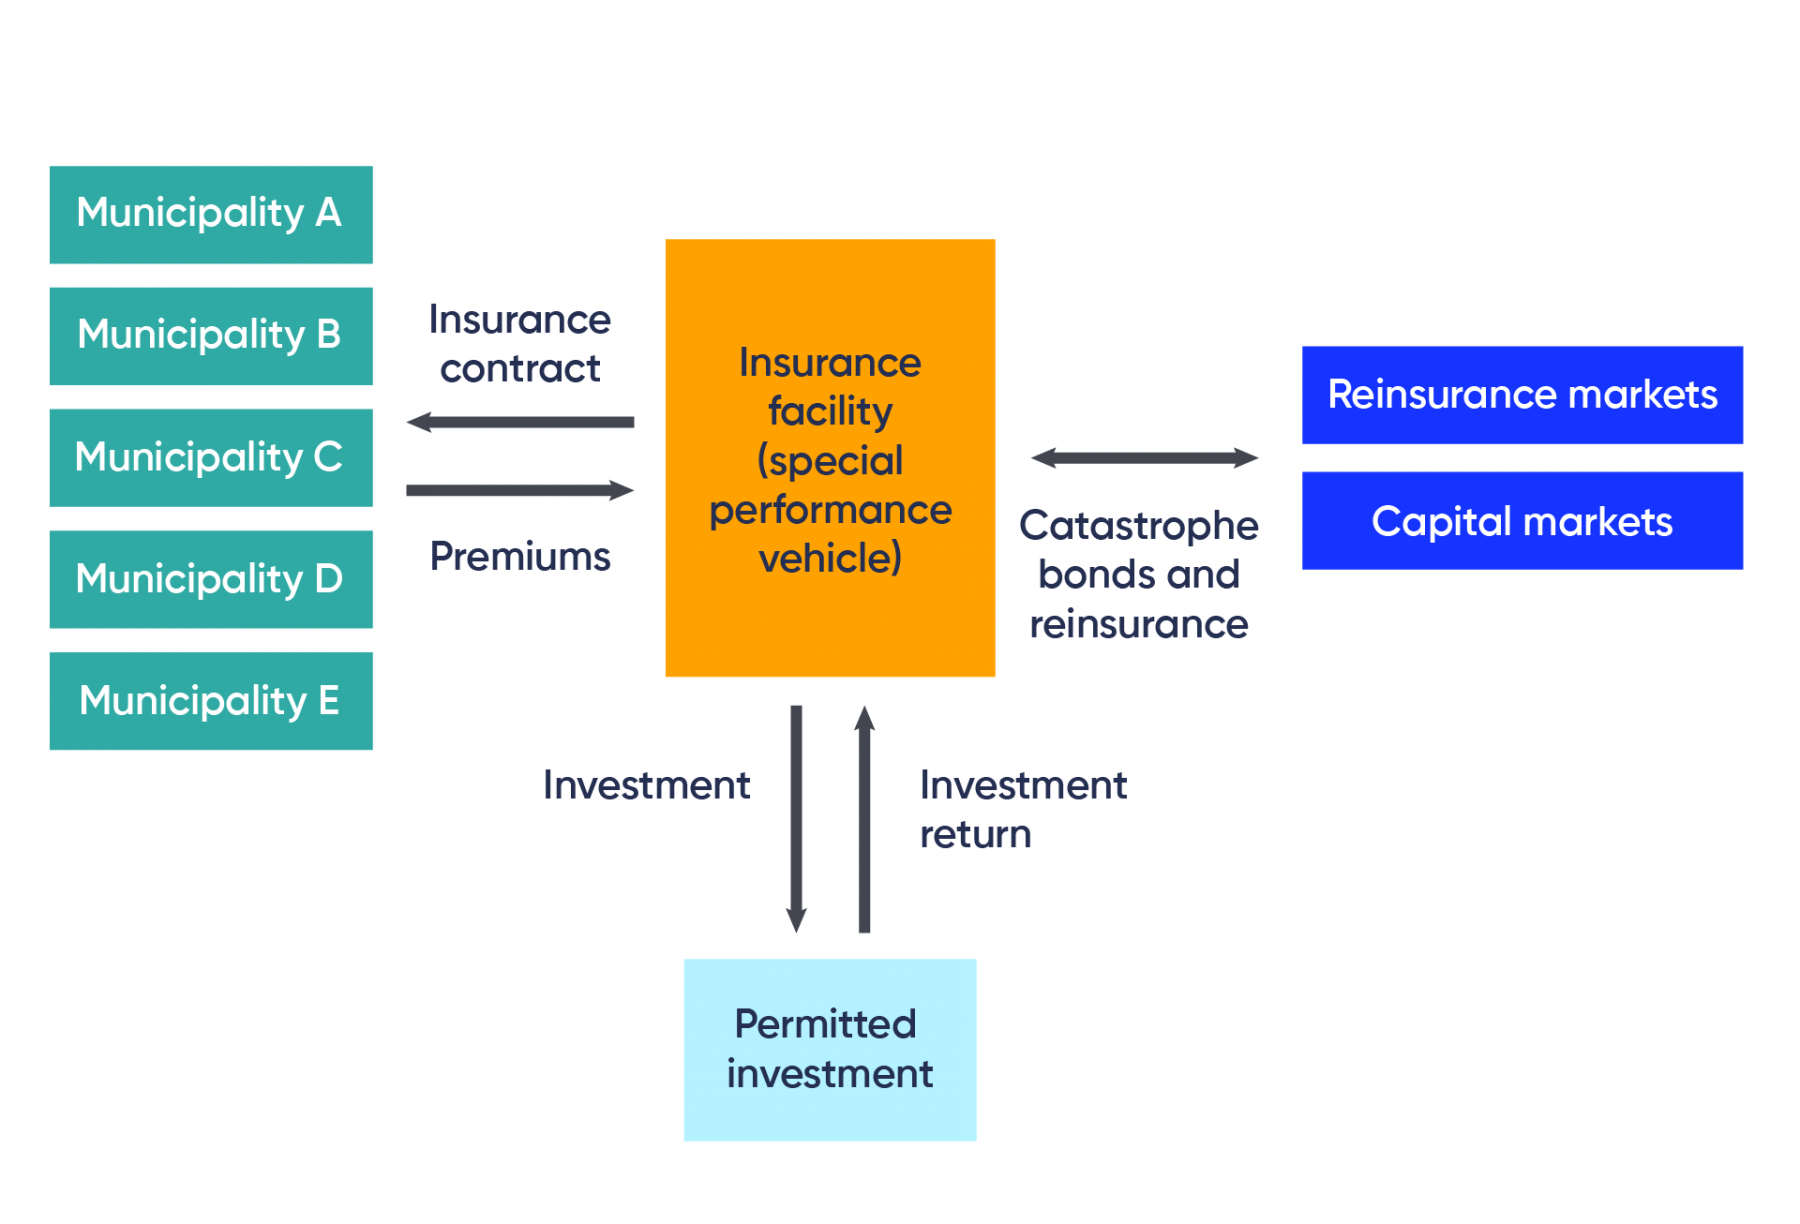 Figure represents a proposed structure of a Municipal Risk Pooling Facility. In this structure, five municipalities have an insurance contract with an insurance facility (special performance vehicle). The insurance facility shares catastrophe bonds and reinsurance with reinsurance markets and capital markets. The insurance facility invests in a permitted investment and receives returns from it.